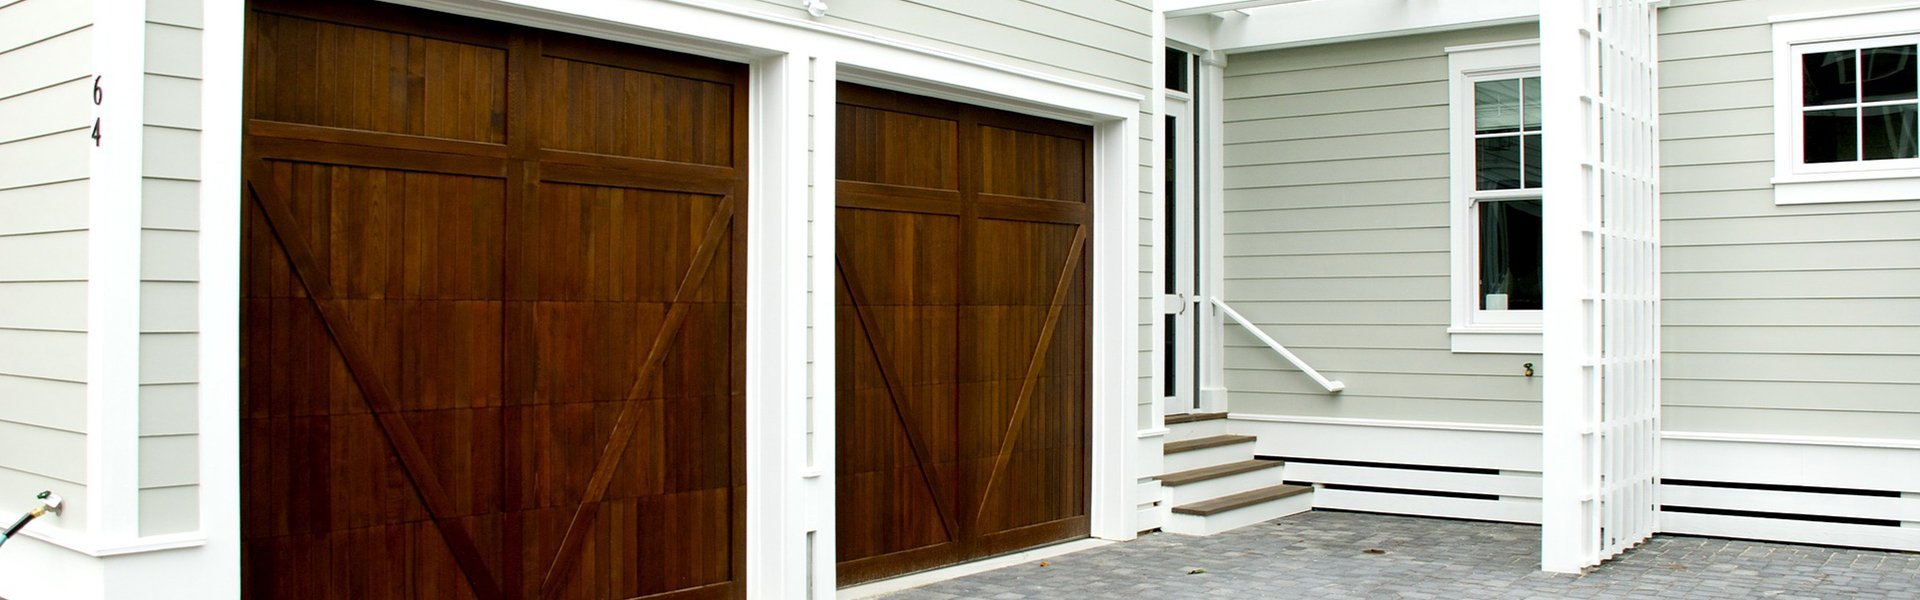 Garage Door Repair Installation College Park Md Bwi